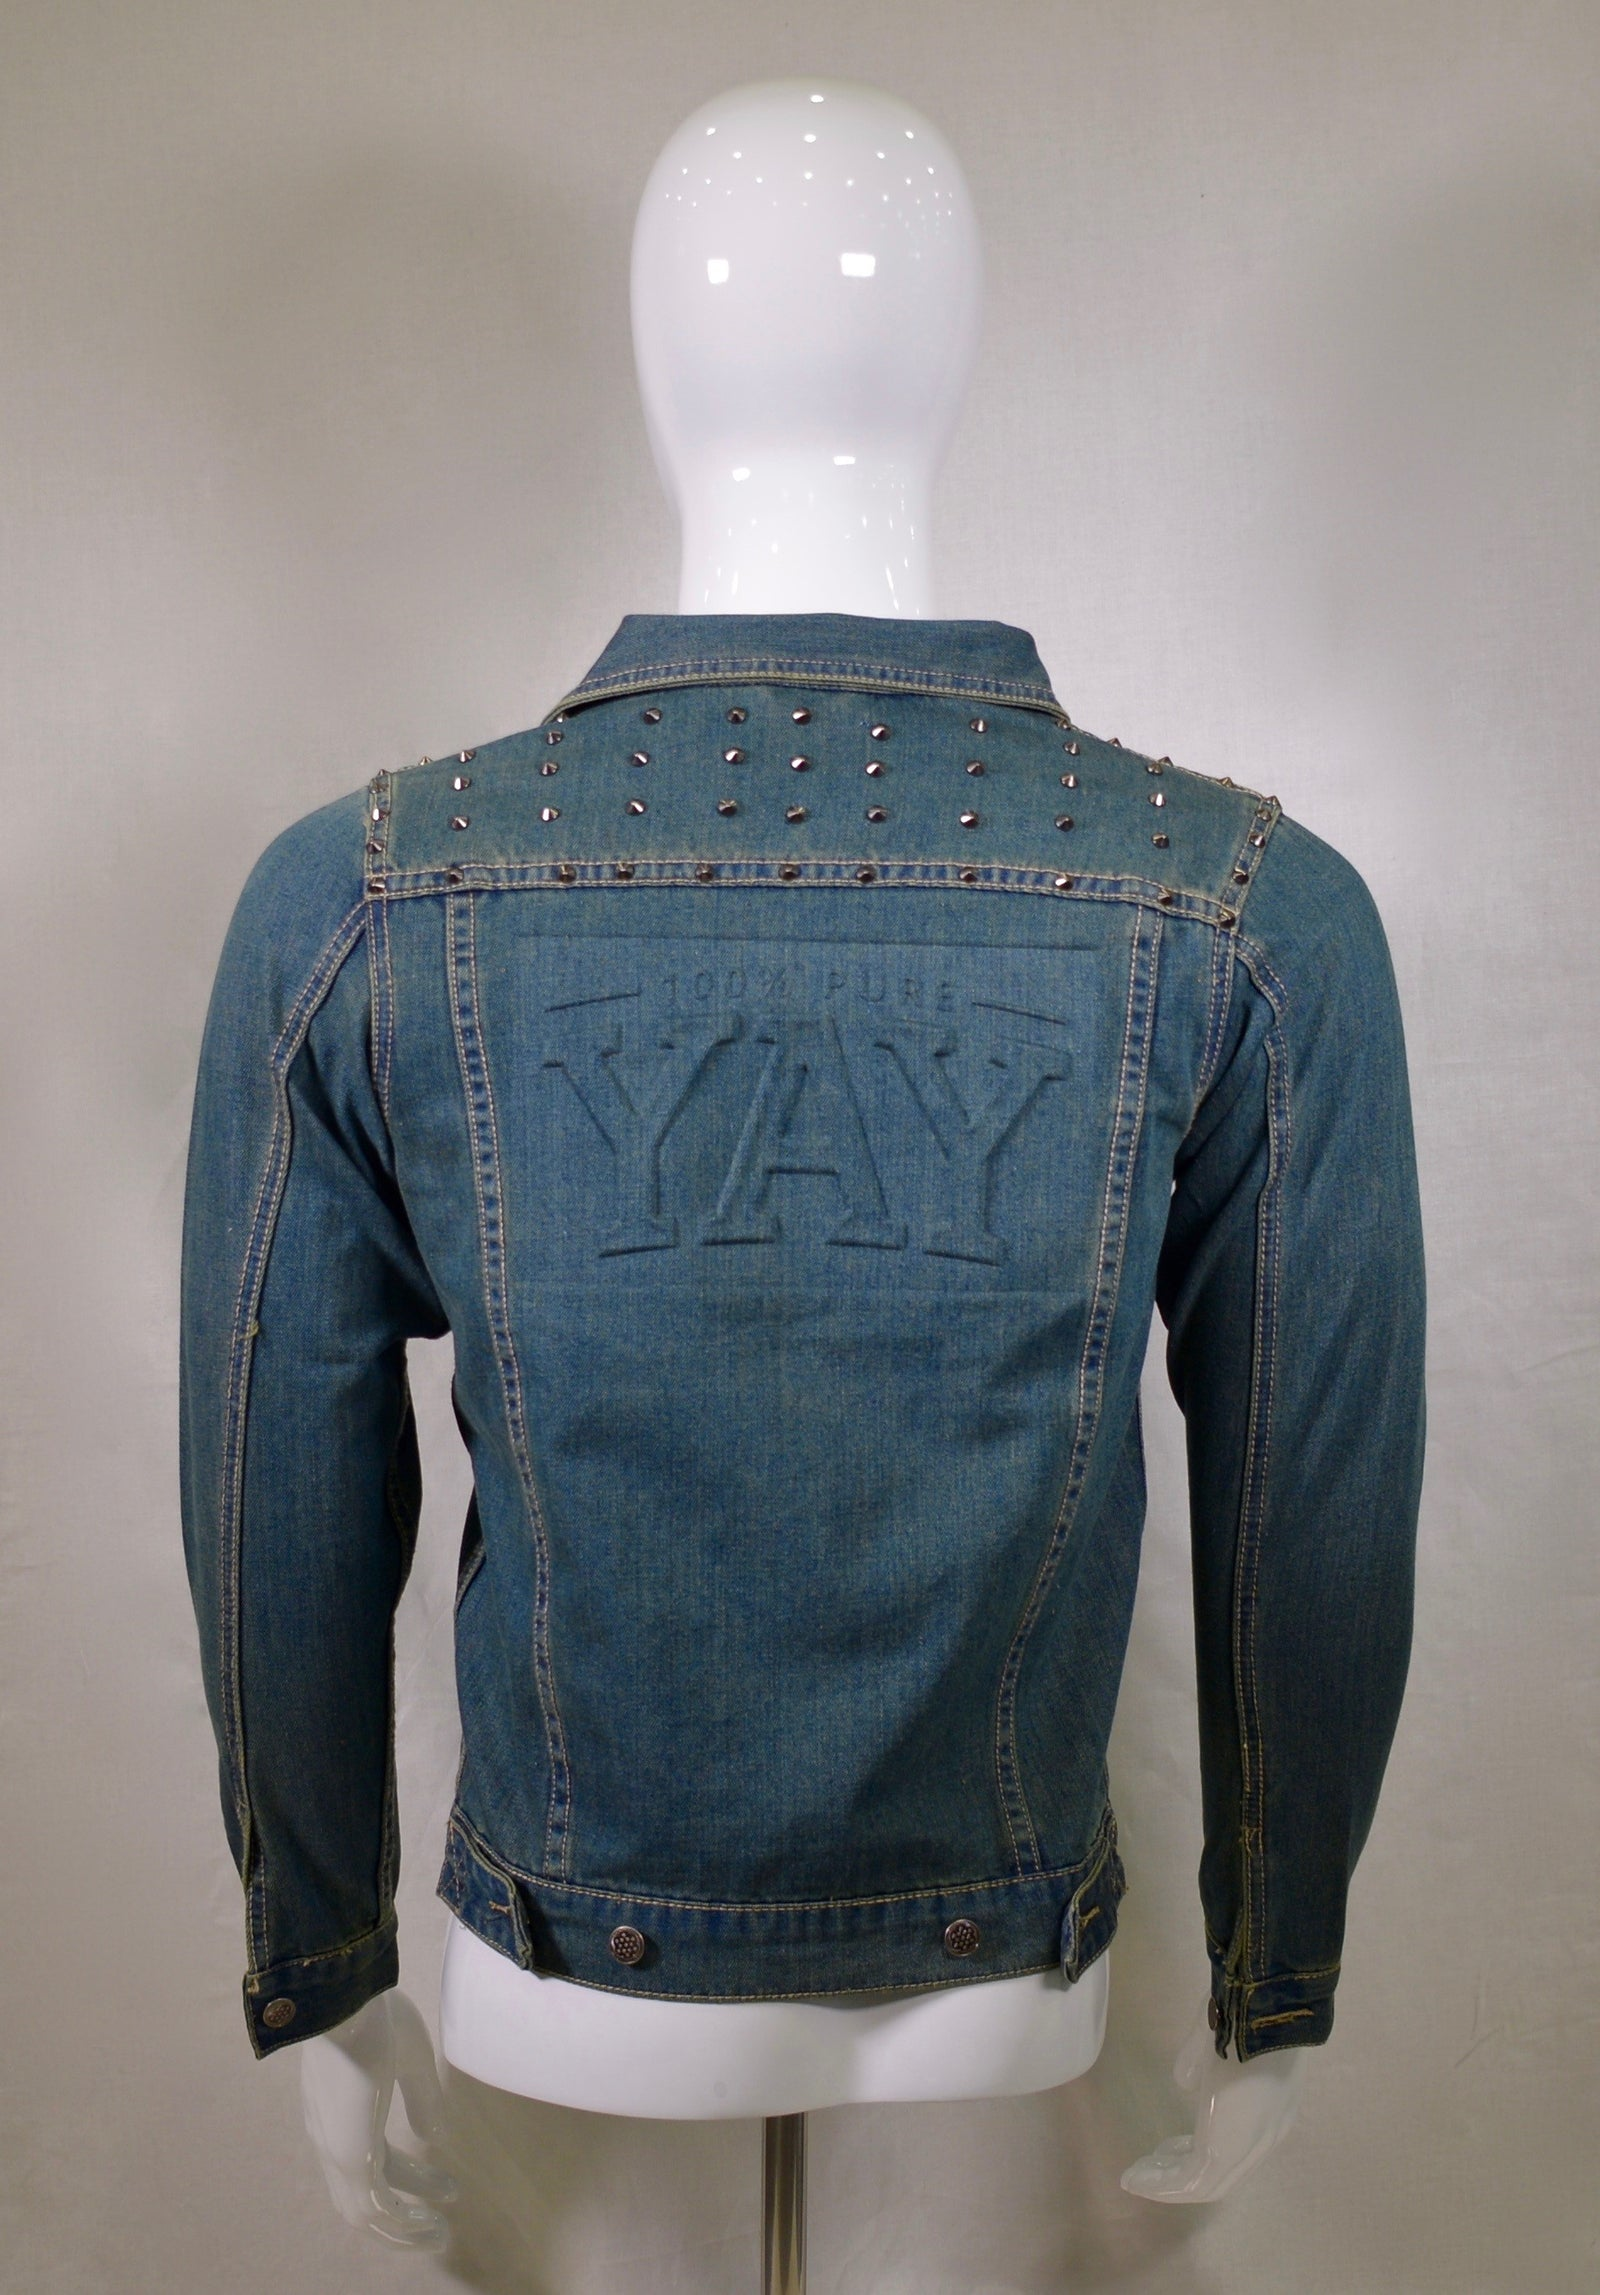 Chinx Yay Press Vintage Spiked Denim Jacket